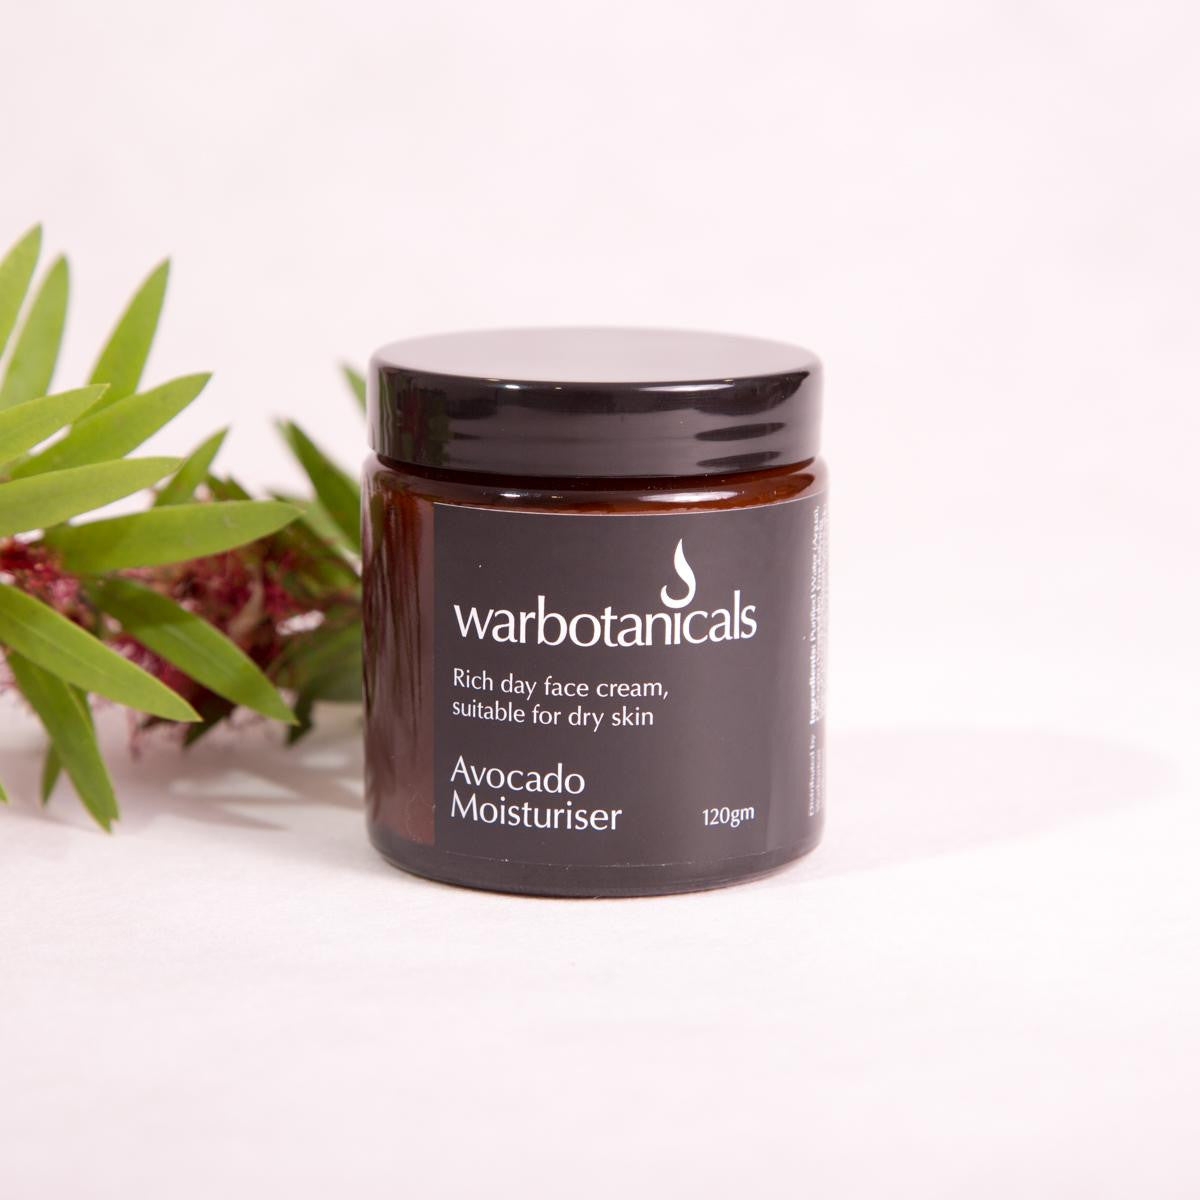 Avocado Moisturiser - 120gm - Moisturiser - Throw Some Seeds - Australian gardening gifts and eco products online!